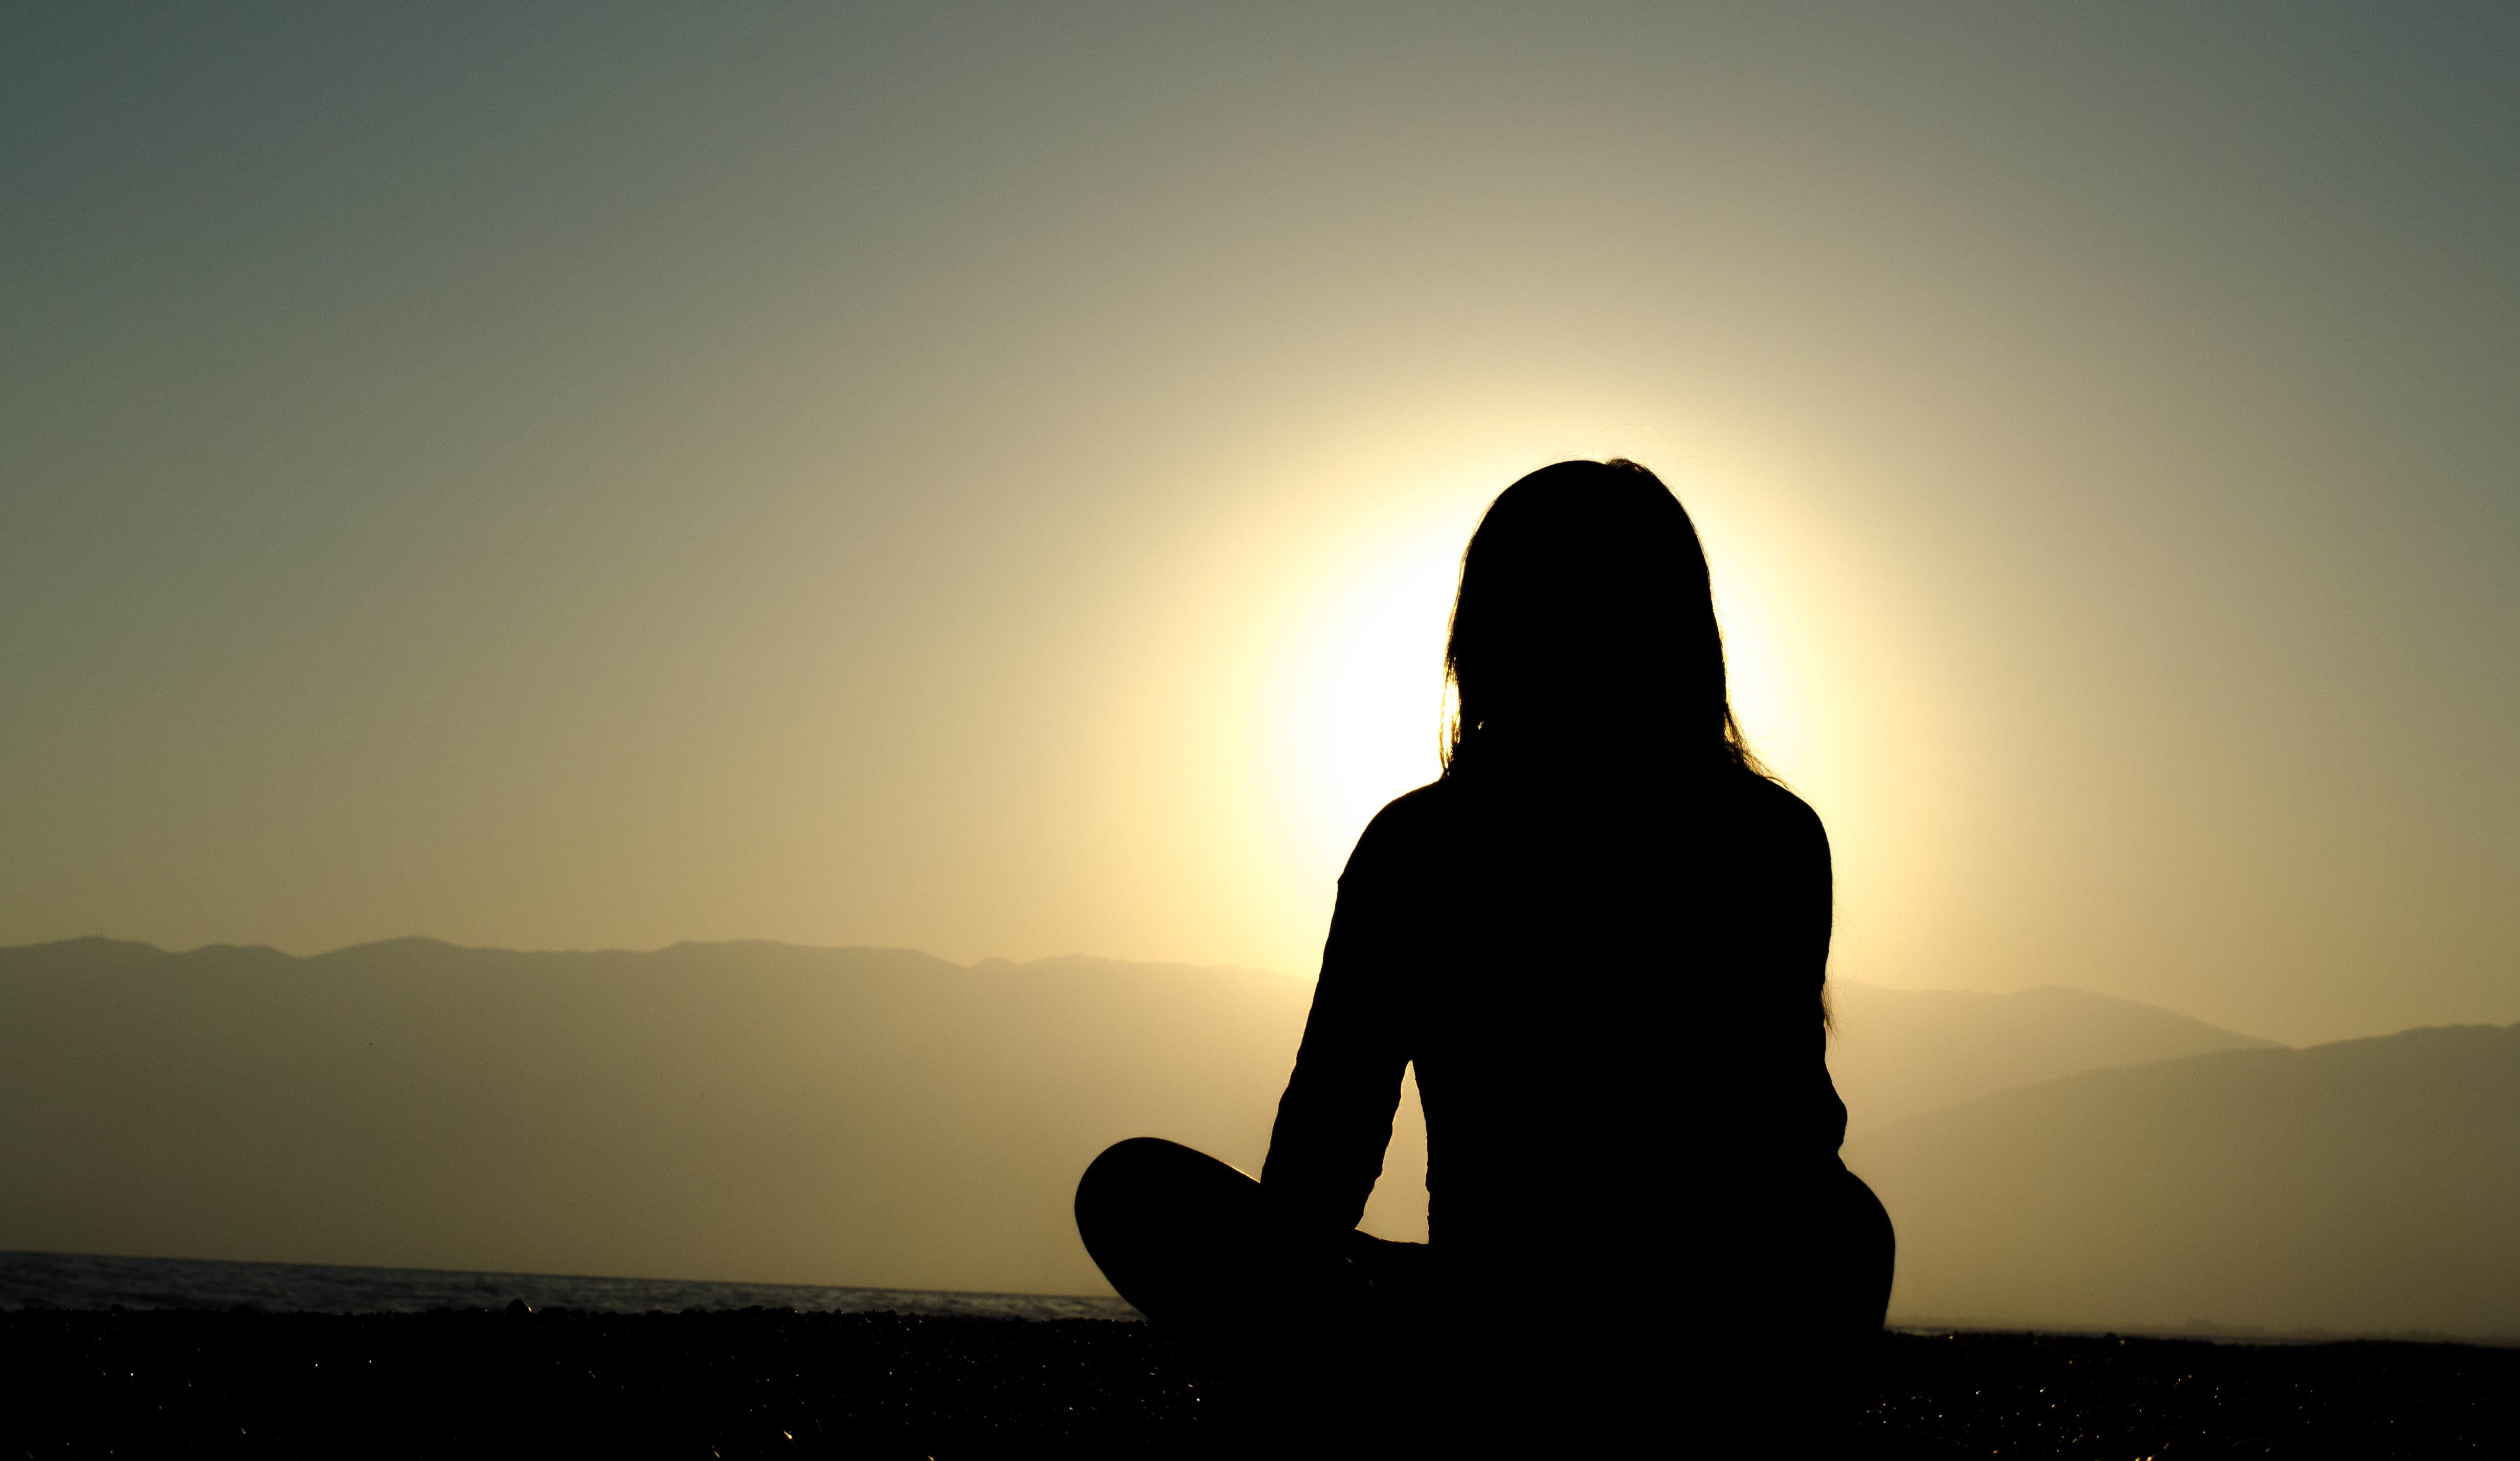 A person meditating in the sun.